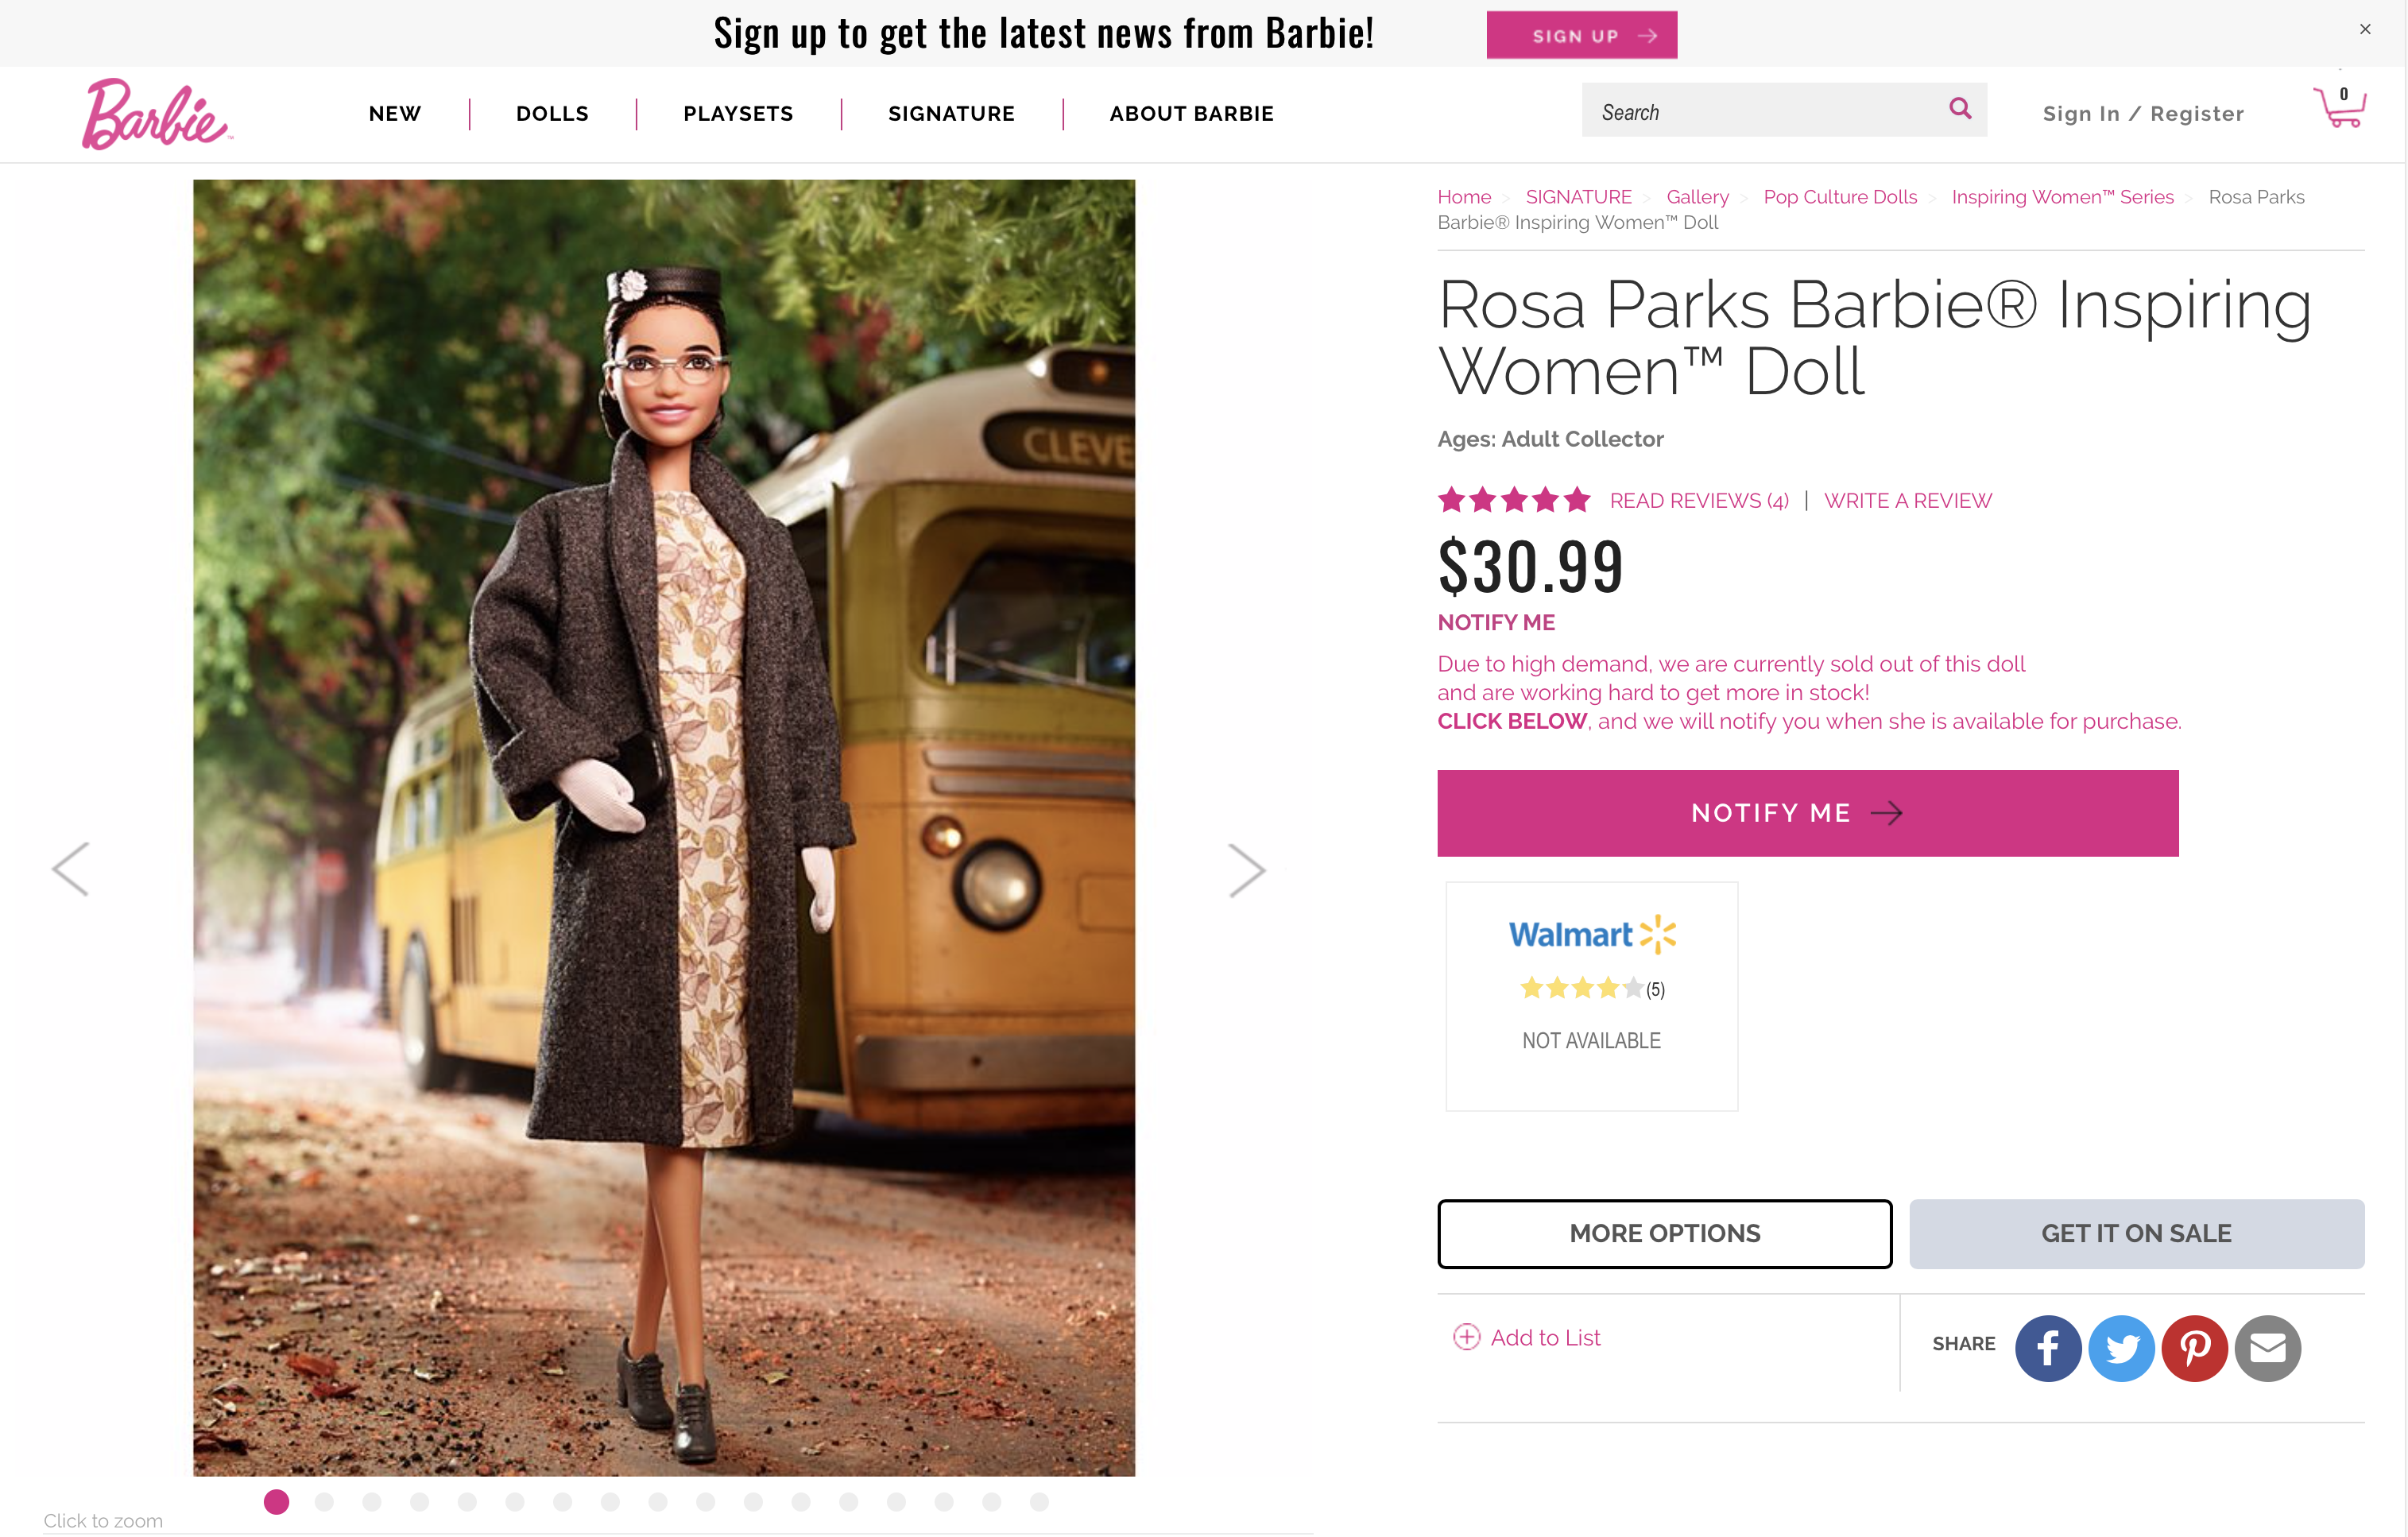 "PRODUCT FEATURES Barbie® recognizes all female role models. The Inspiring Women™ Series pays tribute to incredible heroines of their time; courageous women who took risks, changed rules and paved the way for generations of girls to dream bigger than ever before. Rosa Louise Parks worked as a seamstress and dedicated activist leading up to December 1, 1955. When she refused an order to give up her seat to a white passenger and move to the back of the bus, Mrs. Parks' act of defiance became the catalyst for the Montgomery Bus Boycott. Rosa Parks' quiet strength played a notable role in the civil rights movement, but it would still take another nine years and more struggles before the 1964 Civil Rights Act overruled existing segregations laws. Hailed as ""the Mother of the Modern Civil Rights Movement,"" Rosa Parks earned worldwide recognition and numerous awards including the prestigious Presidential Medal of Freedom and Congressional Gold Medal of Honor. Celebrate Rosa Parks and her impact on the civil rights movement with this Inspiring Women™ Series Rosa Parks Barbie® doll. Includes doll stand, Certificate of Authenticity and doll wearing fashion and accessories. Colors and decorations may vary.  Learn more here –> Label: Black Label® Designer: Kelley Lindberg Release Date: 8/26/2019 Included with doll: Hat, glasses,shoes,clutch, dress, coat, gloves, doll stand Eyelashes: Painted Fashion: Coat, printed dress, hat Fashion Sewn On?: No Body Type: Posable torso w/ articulate knee Doll Stand: Yes Facial sculpt: FNJ40/Alec Package Dimensions (H/D/W): 13"" x 3"" x 7"""